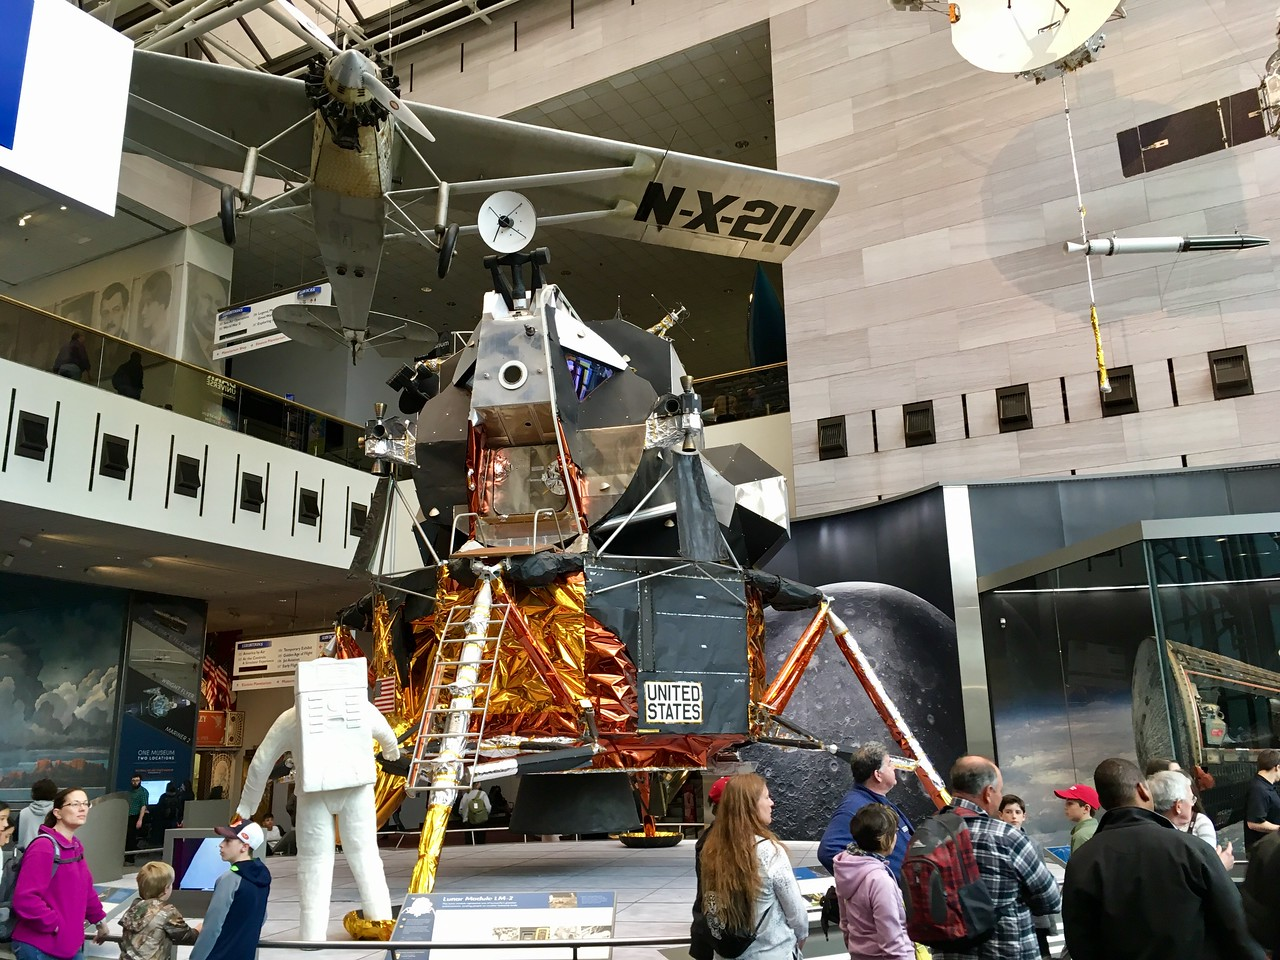 At the Smithsonian National Air and Space Museum